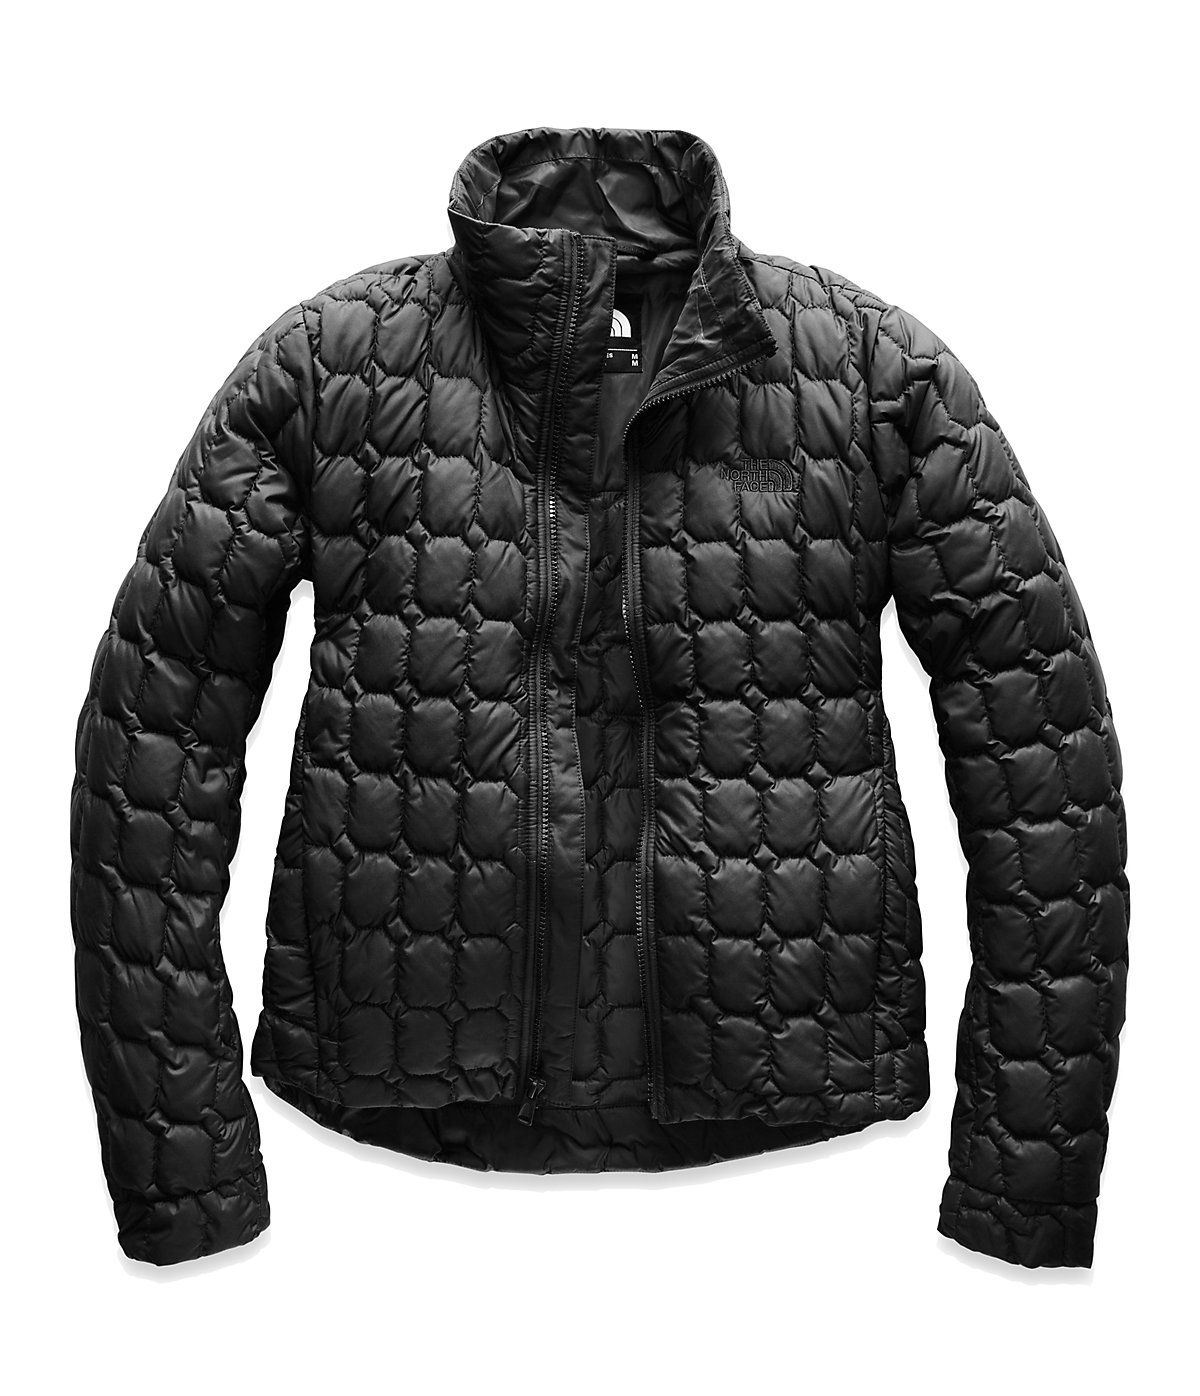 28c8c8a68 Women's thermoball™ crop jacket in 2019   Products   Jackets ...